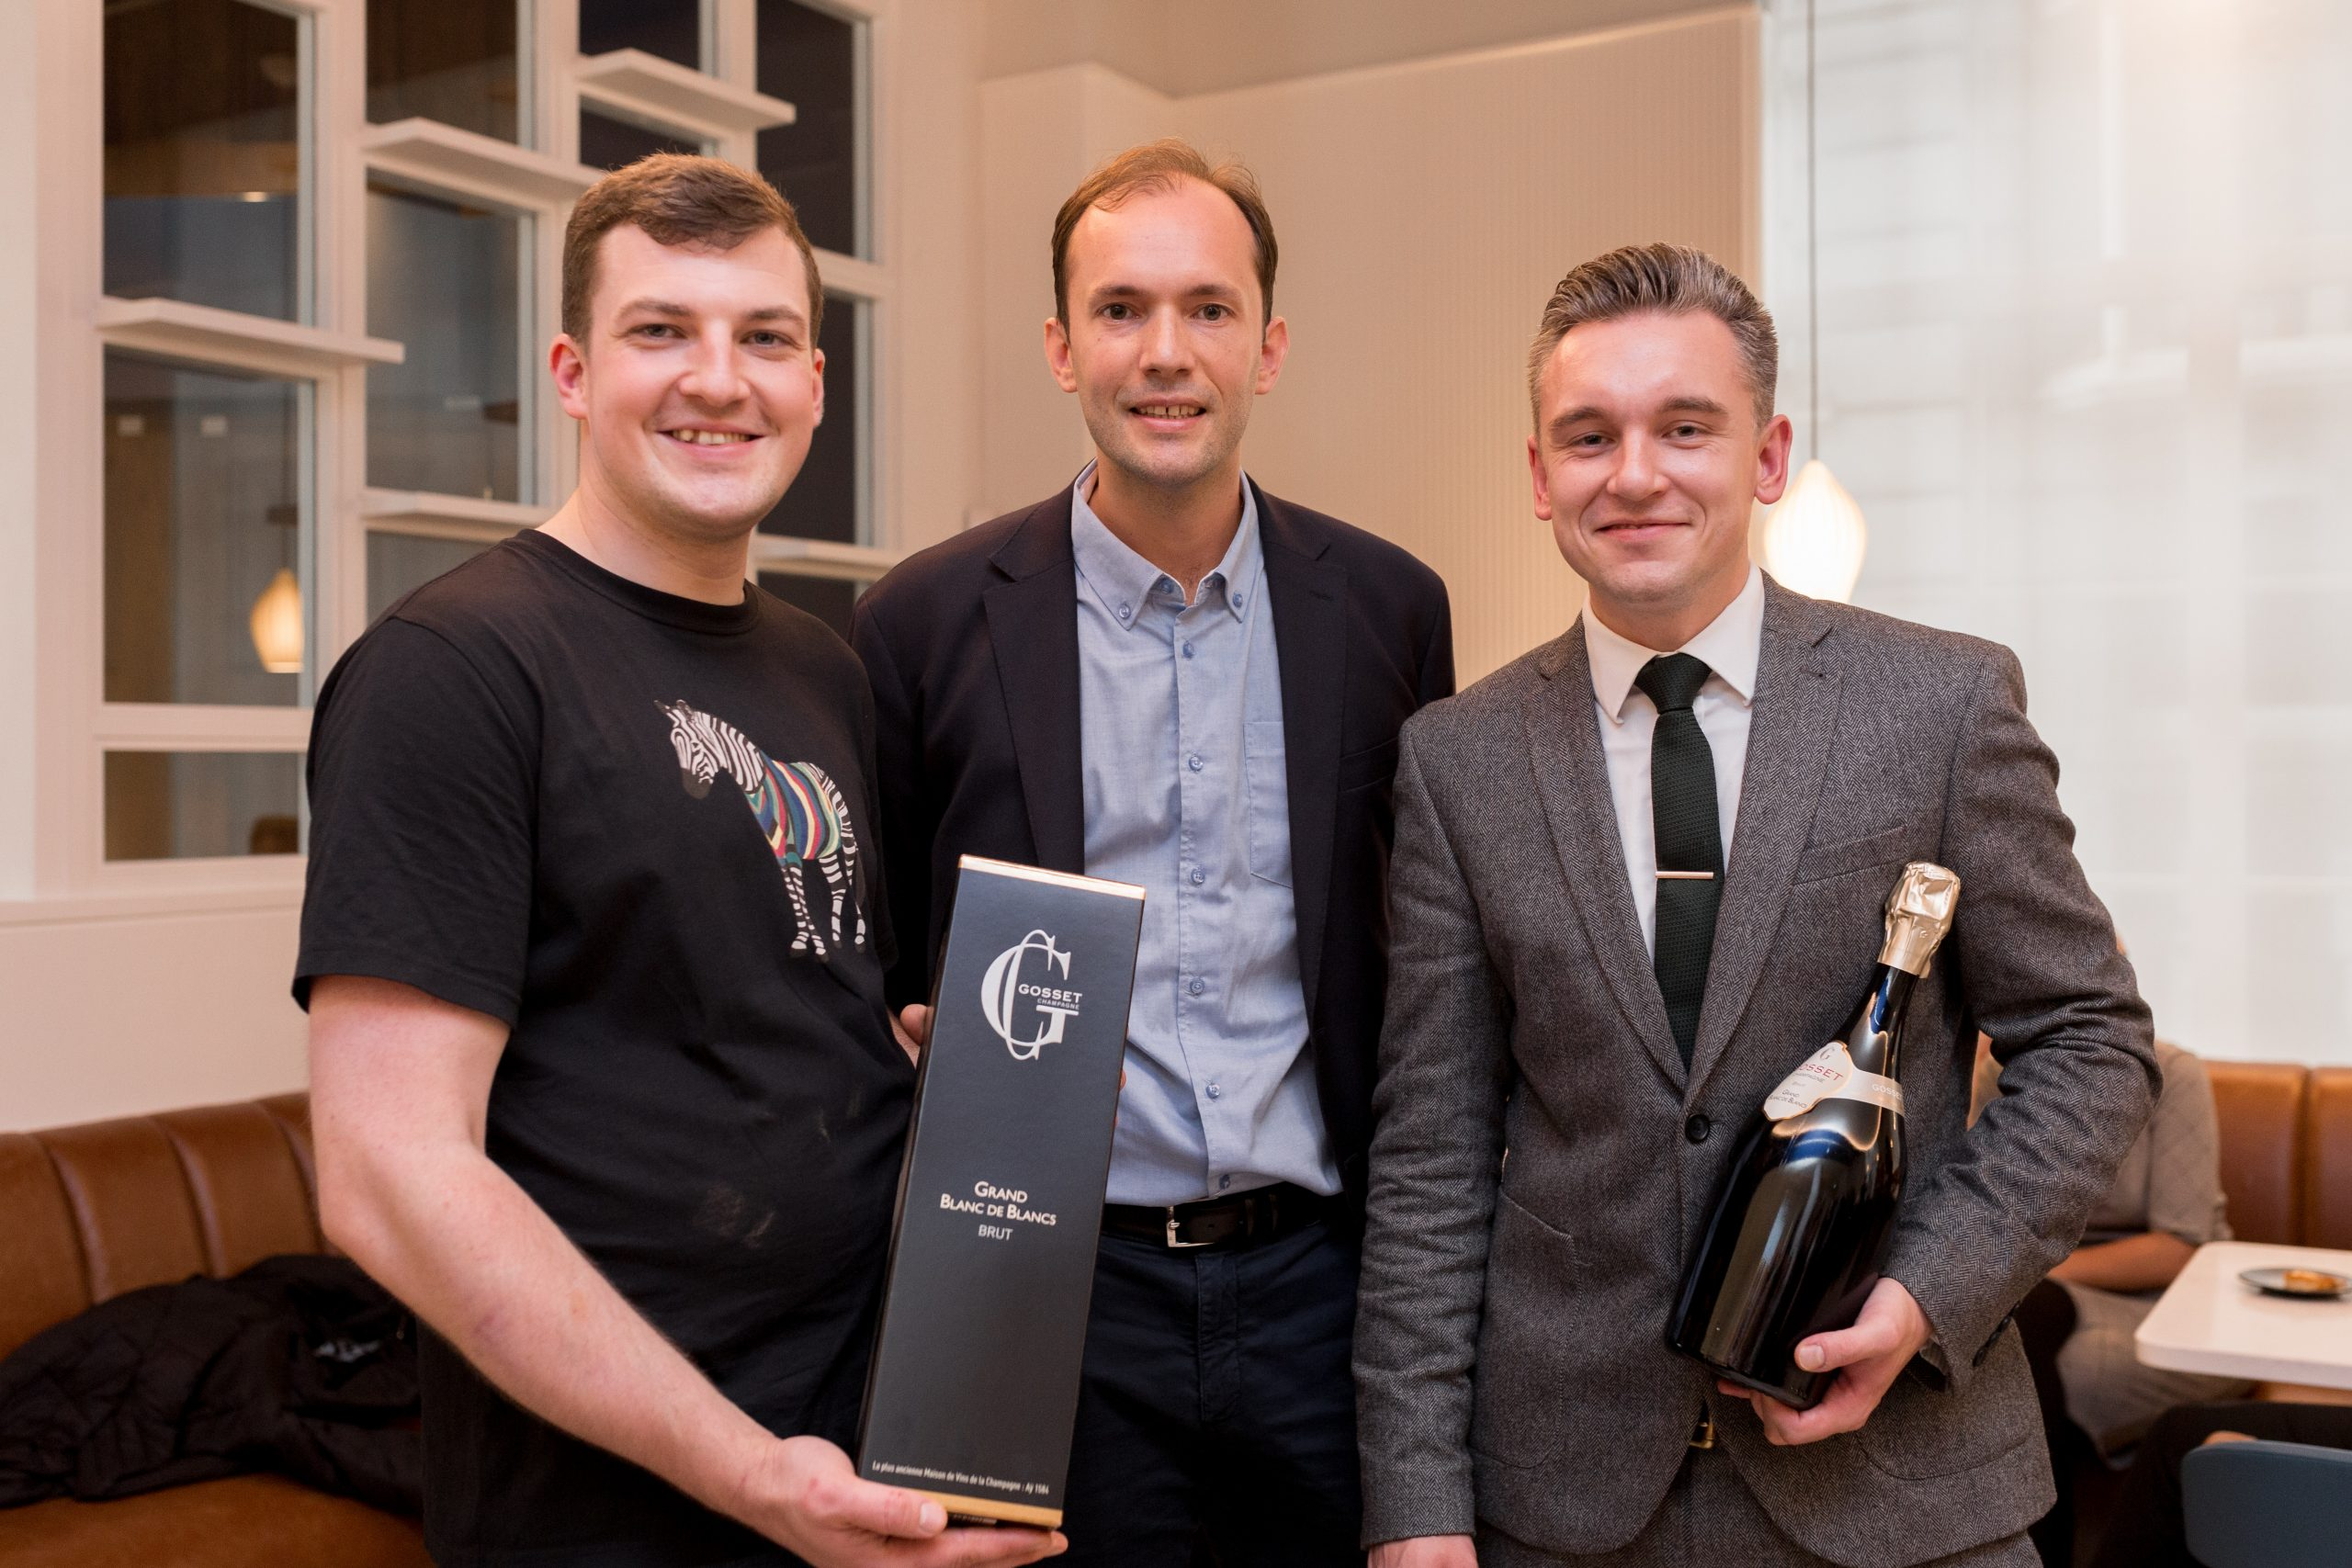 Winners of the Gosset Champagne Matchmakers 2021 competition revealed